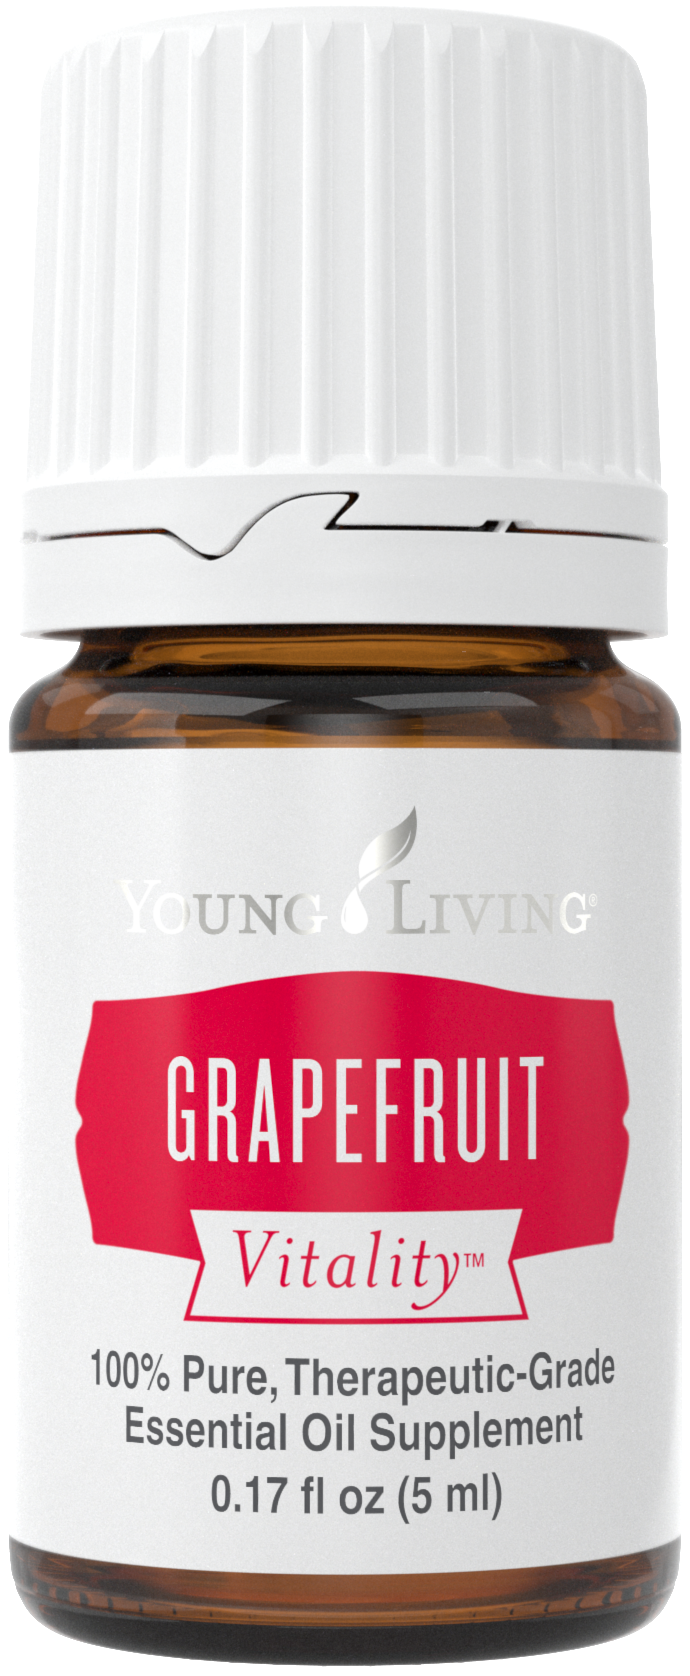 grapefruit_5ml_suplement_silo_2016_23774247944_o